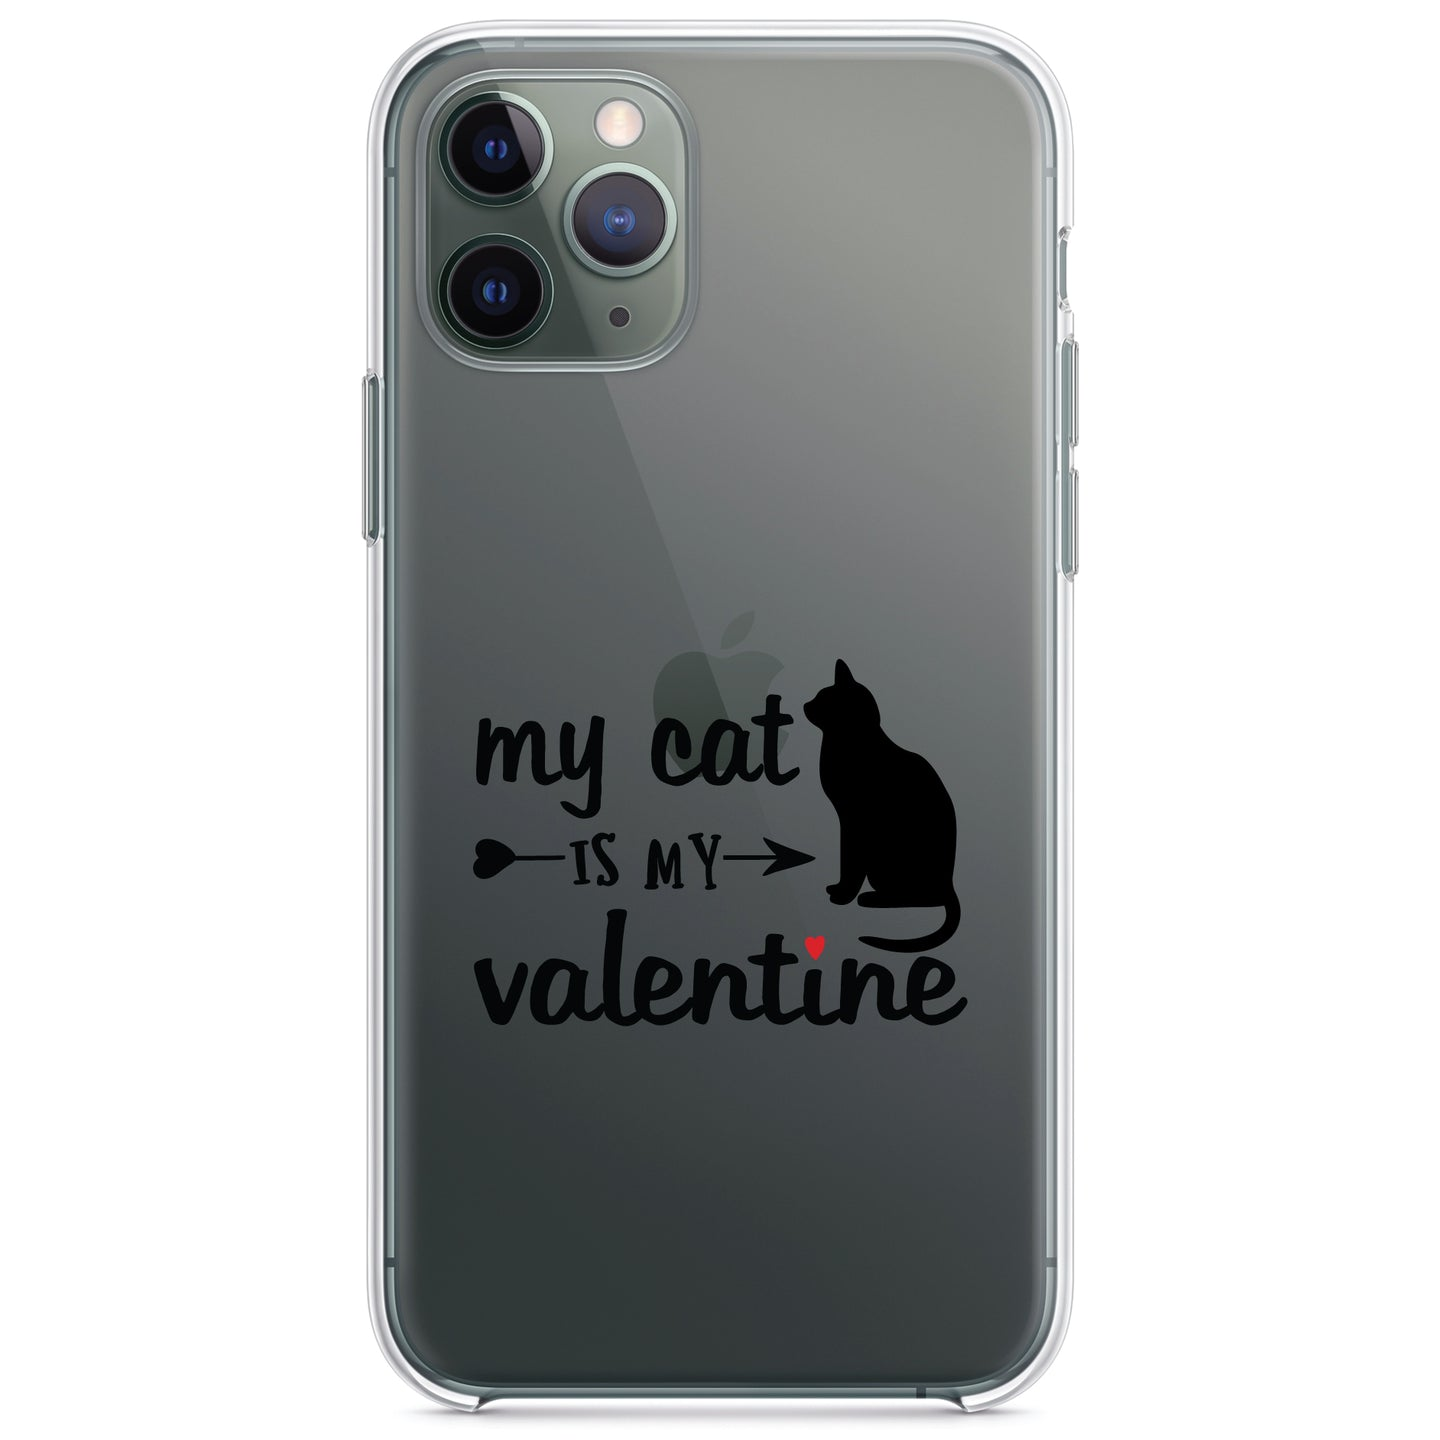 DistinctInk® Clear Shockproof Hybrid Case for Apple iPhone / Samsung Galaxy / Google Pixel - My Cat is My Valentine